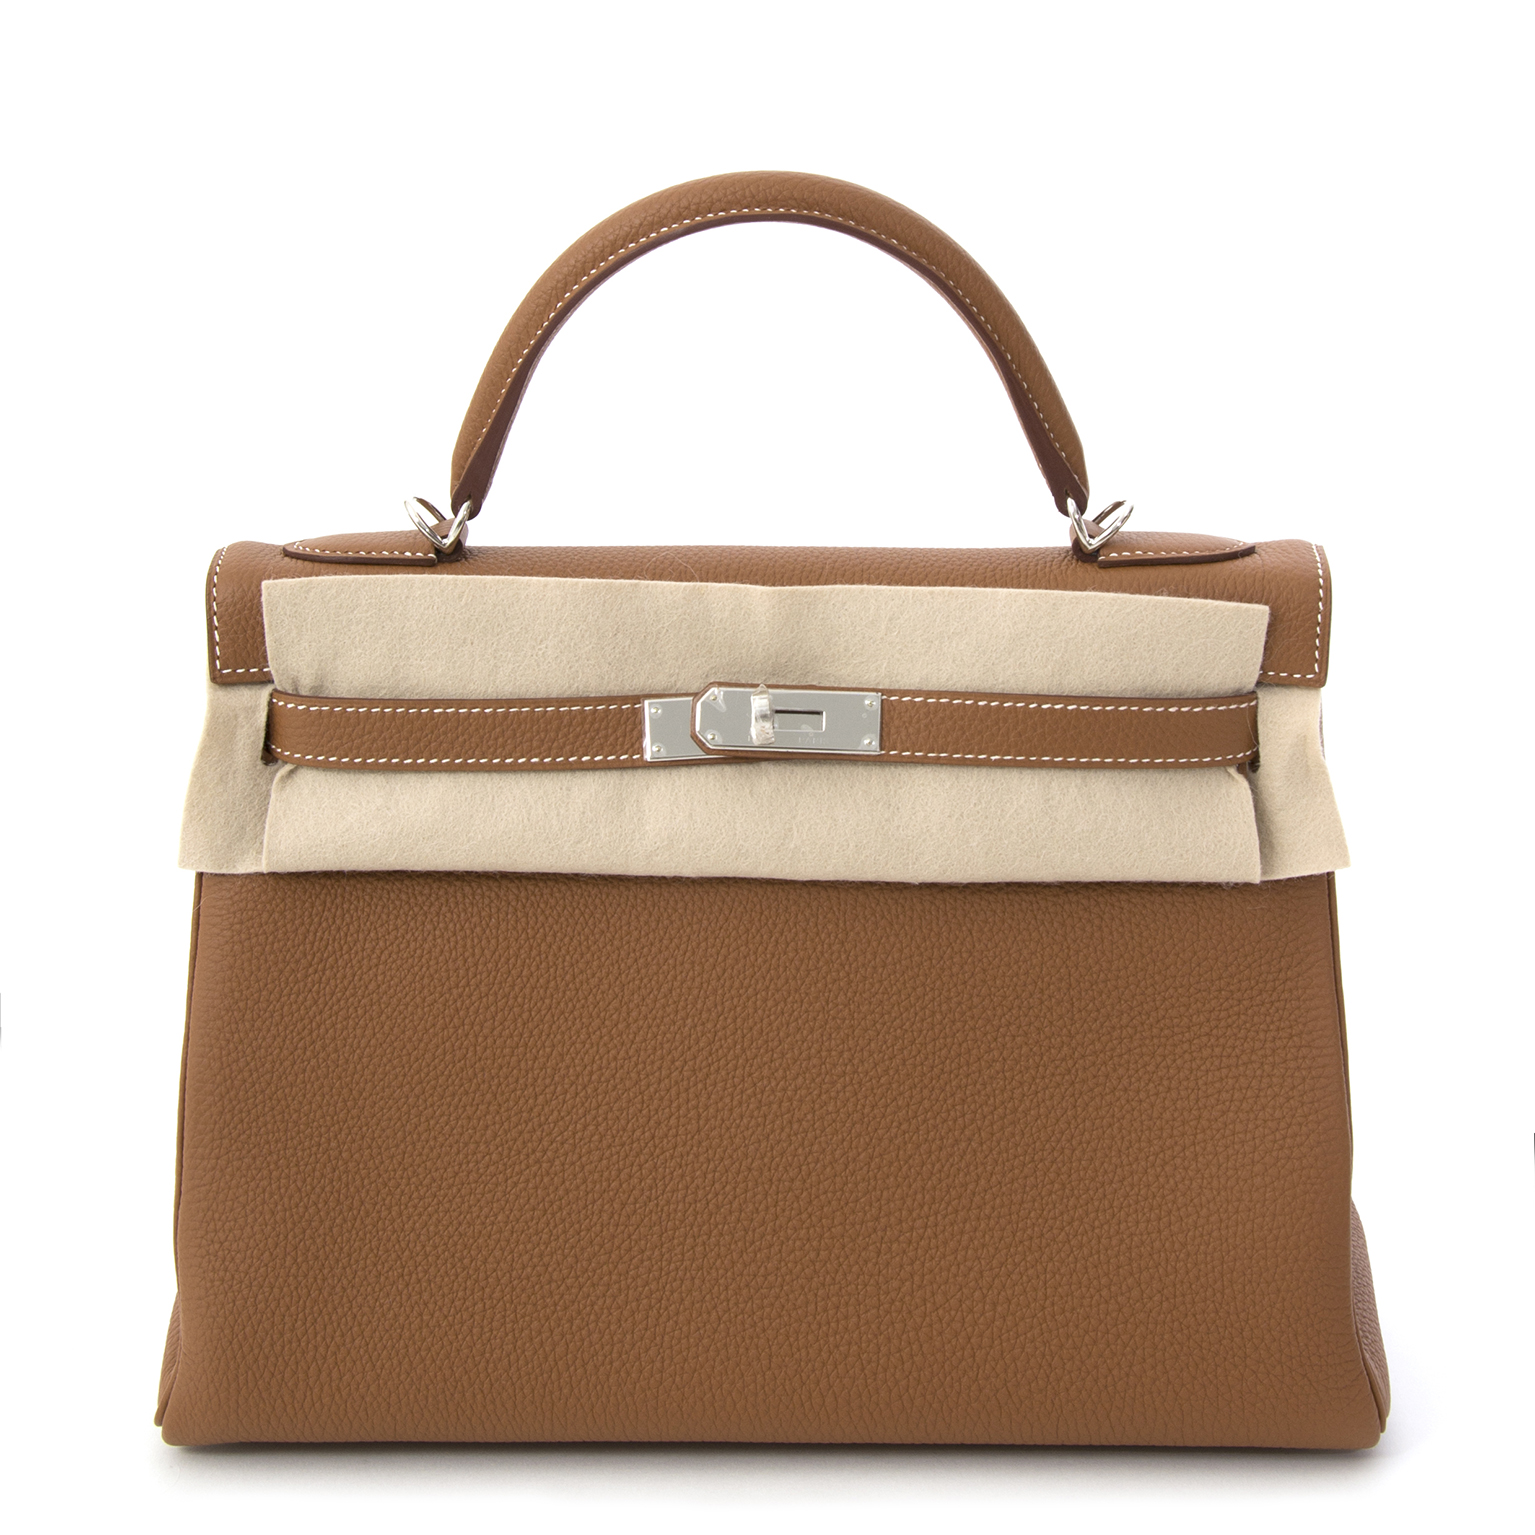 9104d072f5e6 ... sale on Labellov Nieuwe en authentieke Hermès Kelly Togo 32 in gold met  zilveren hardware · Hermes